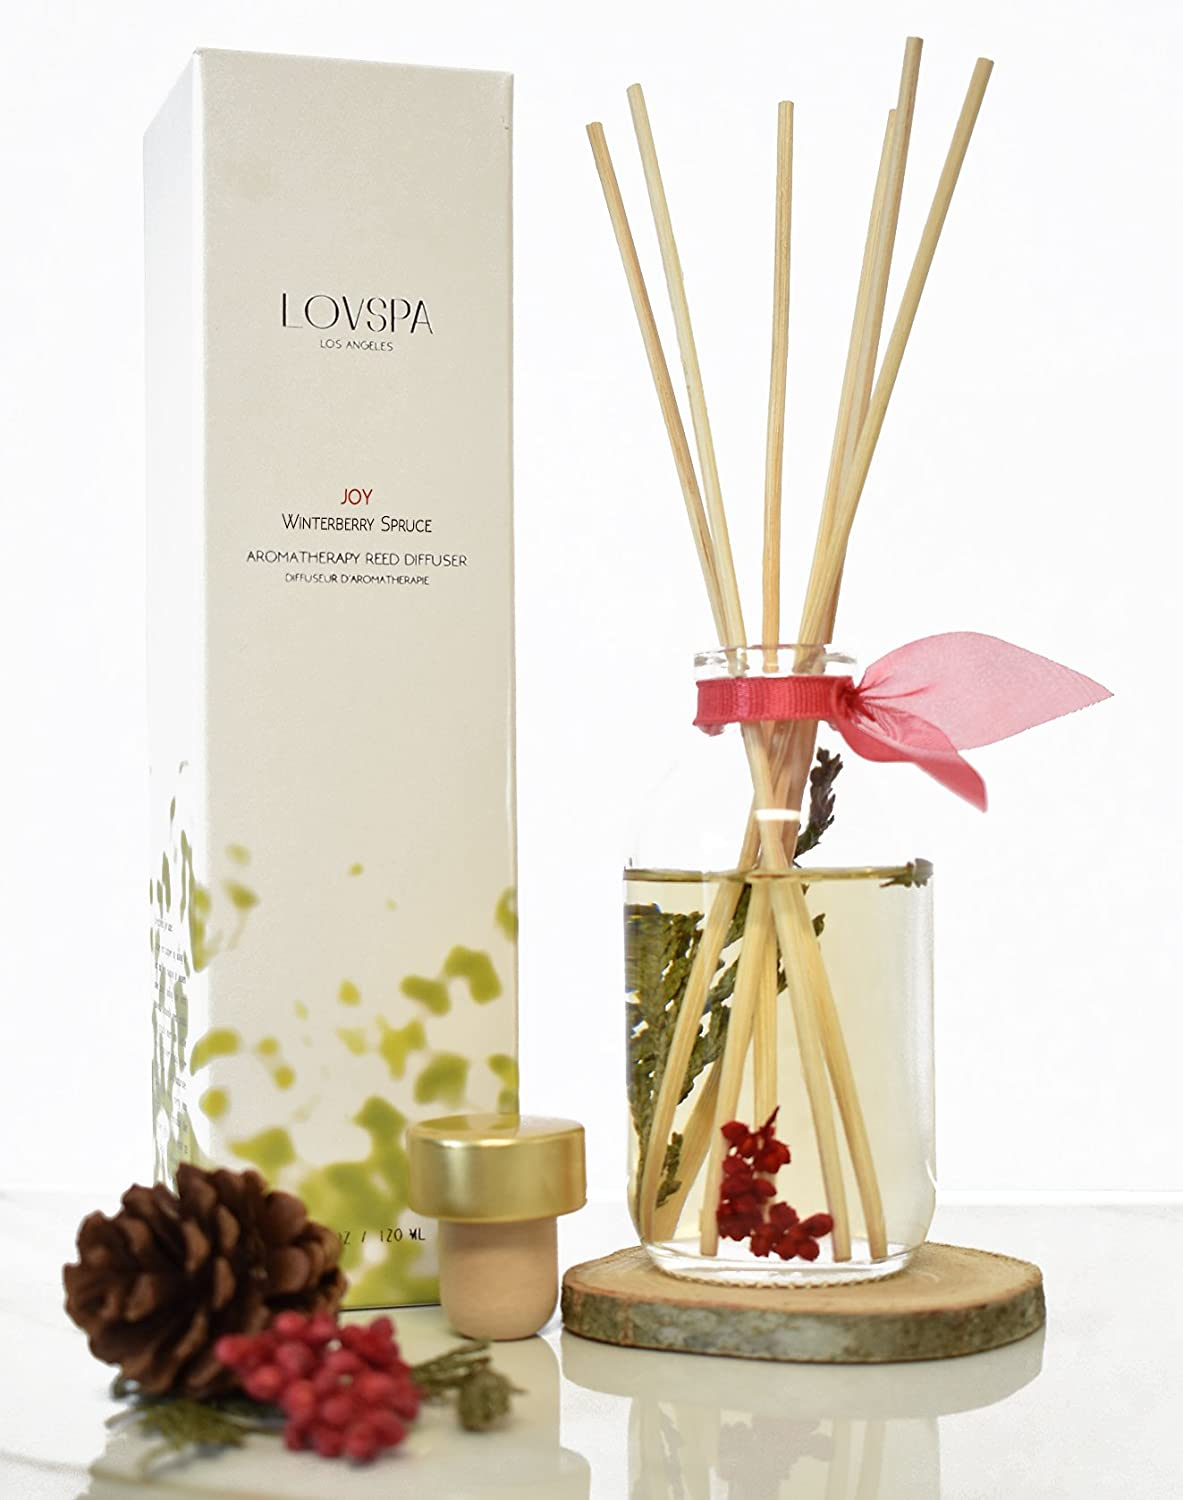 LOVSPA Joy Winterberry Spruce Reed Diffuser Sticks Set with Wood Coaster - Cedar, Balsam, Berries and Spice Scented Oils - Rustic Winter Home Decor Made in The USA